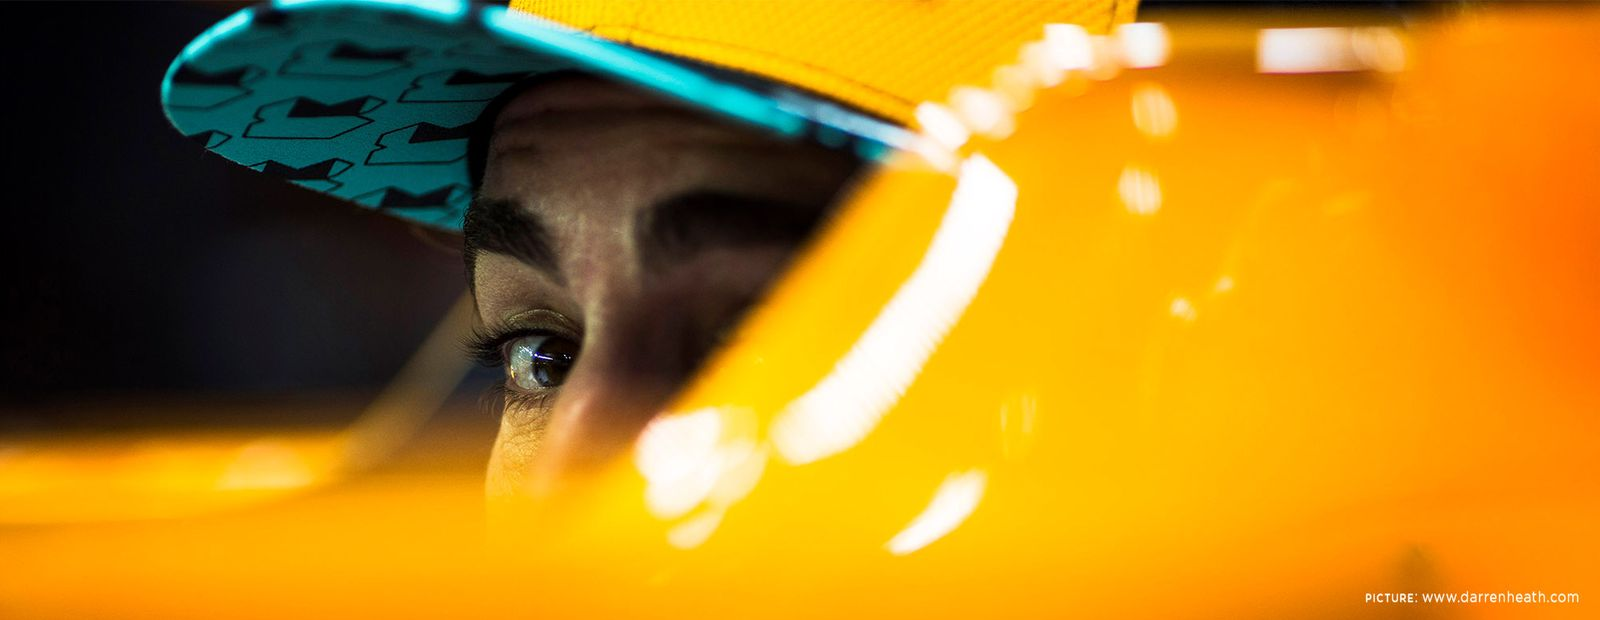 Fernando Alonso: why I race